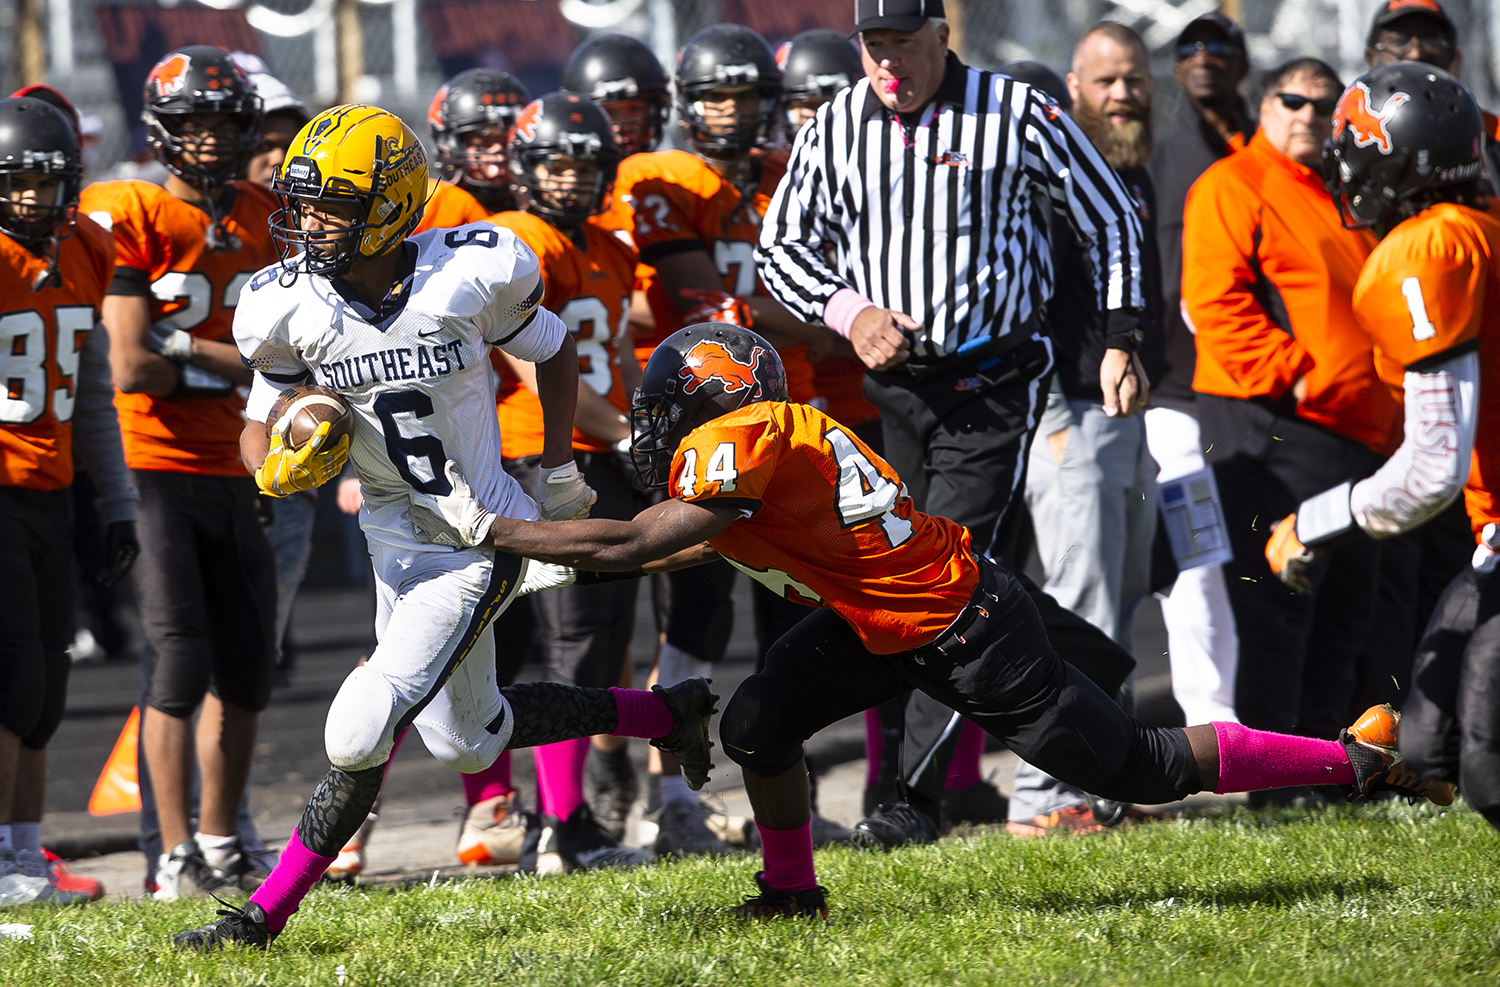 Southeast's Deon Fairlee skirts the sidelines with Lanphier's Tierre Butler in tow at Memorial Stadium Saturday, Oct. 20, 2018 in Springfield, Ill. [Rich Saal/The State Journal-Register]